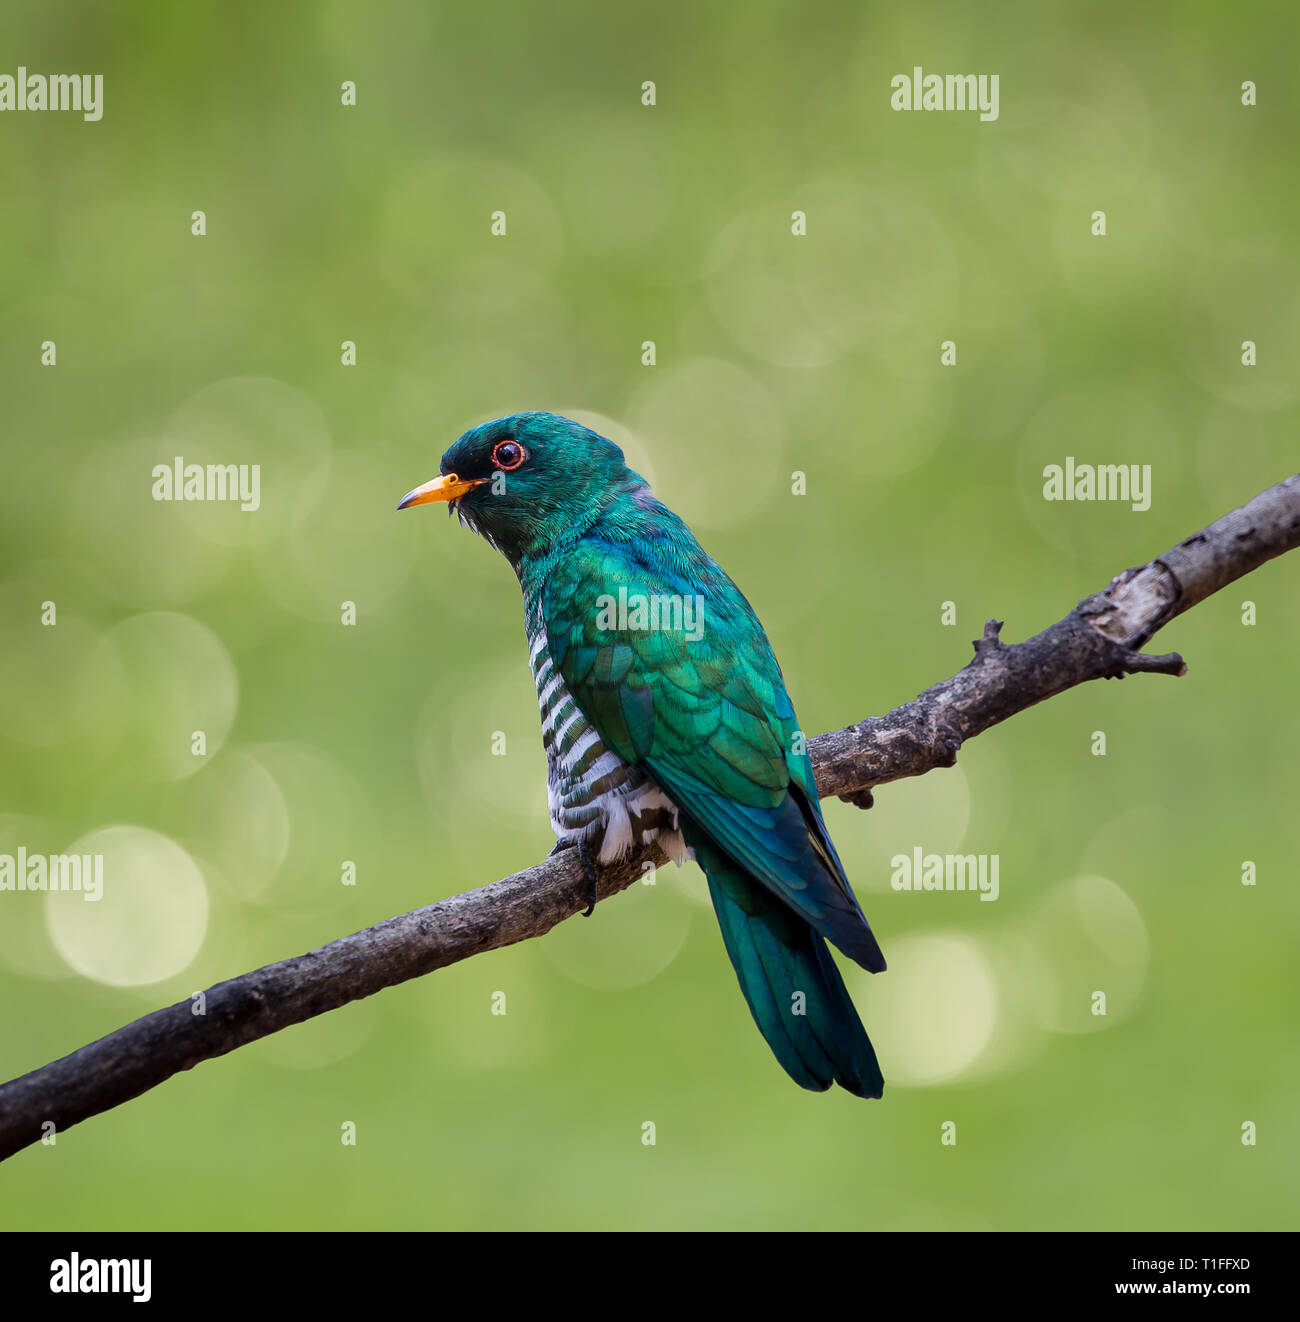 Tropical deciduous forest and proper savanna in africa. Asian Emerald Cuckoo Chrysococcyx Maculatus Cactus Emerald Is Native To The Tropical Evergreen Forests Of Northern India Southern China And Northe Stock Photo Alamy